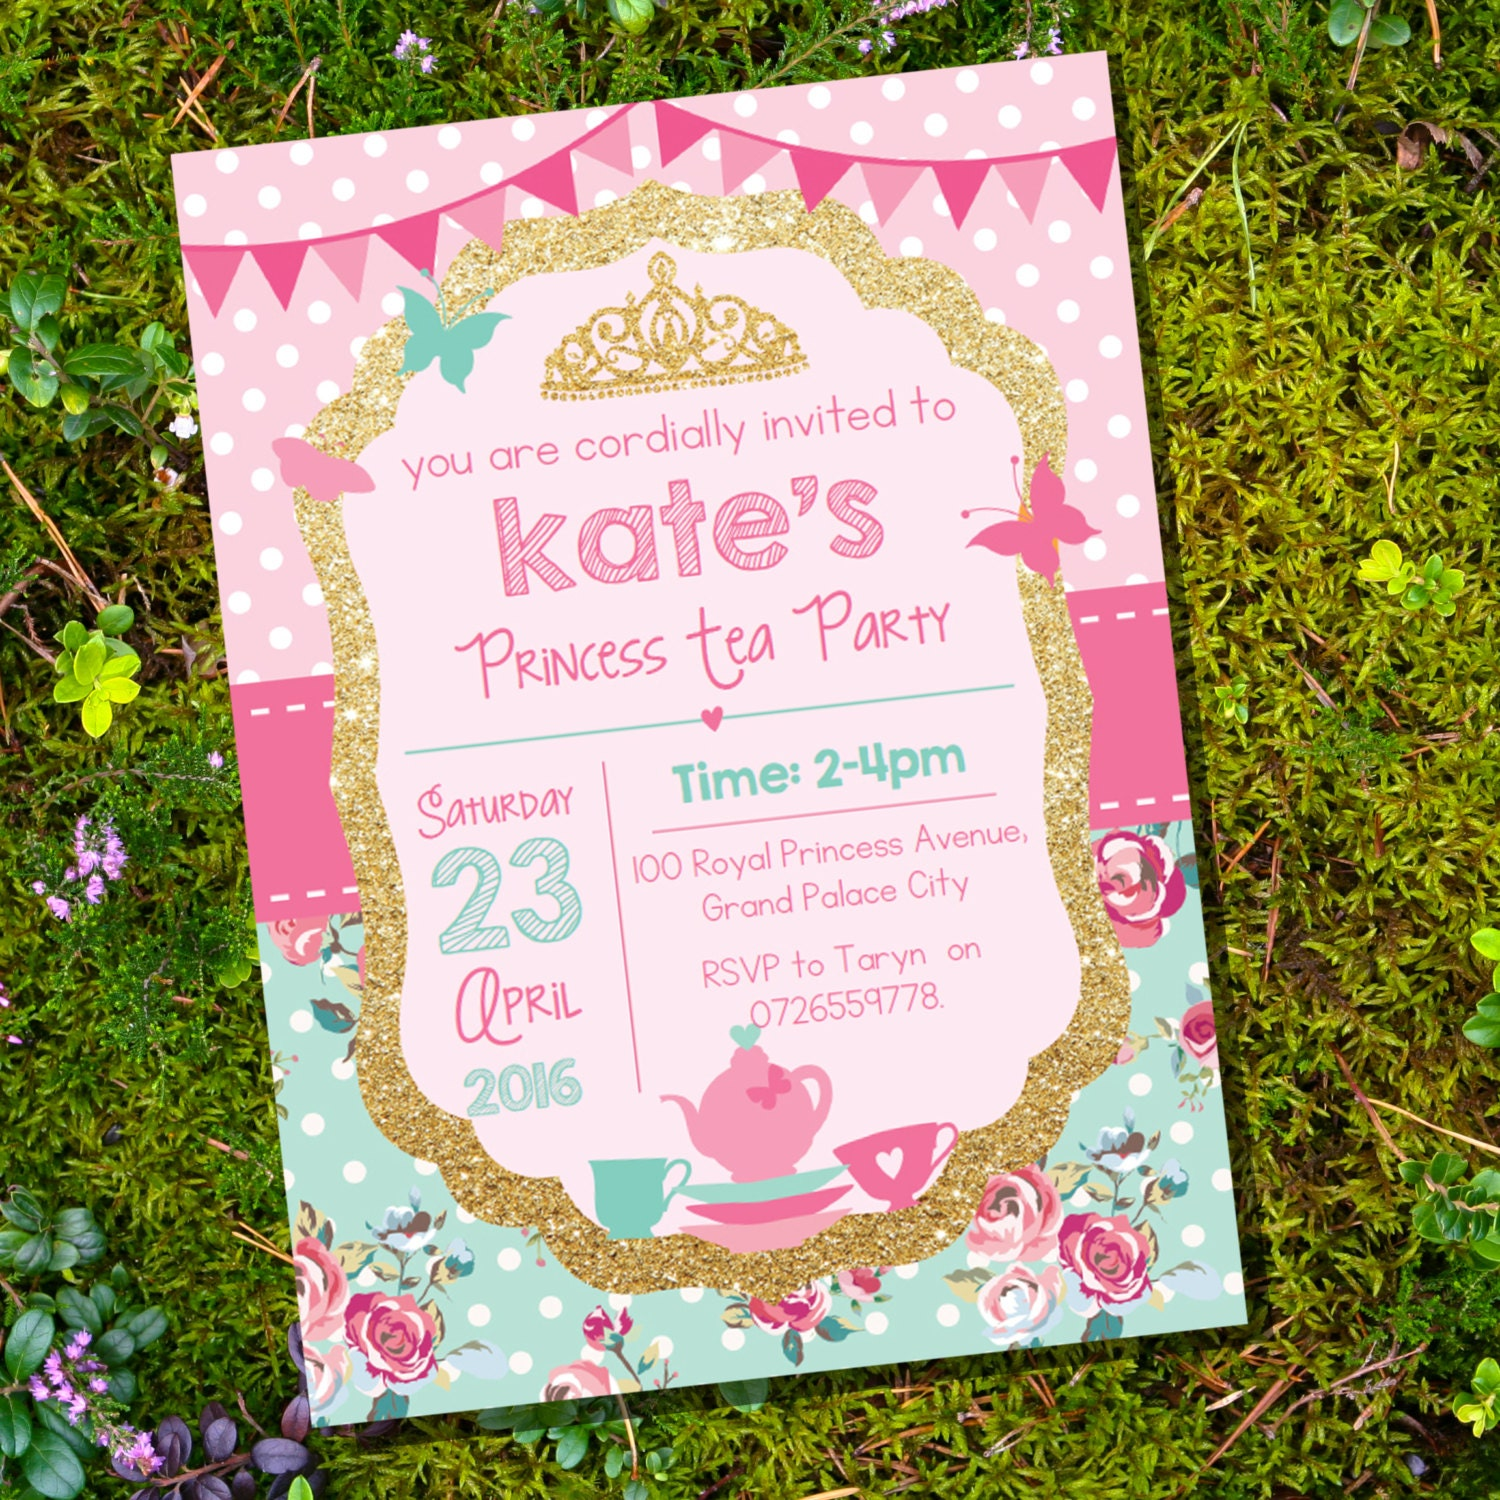 This is a photo of Trust Printable Tea Party Invitations